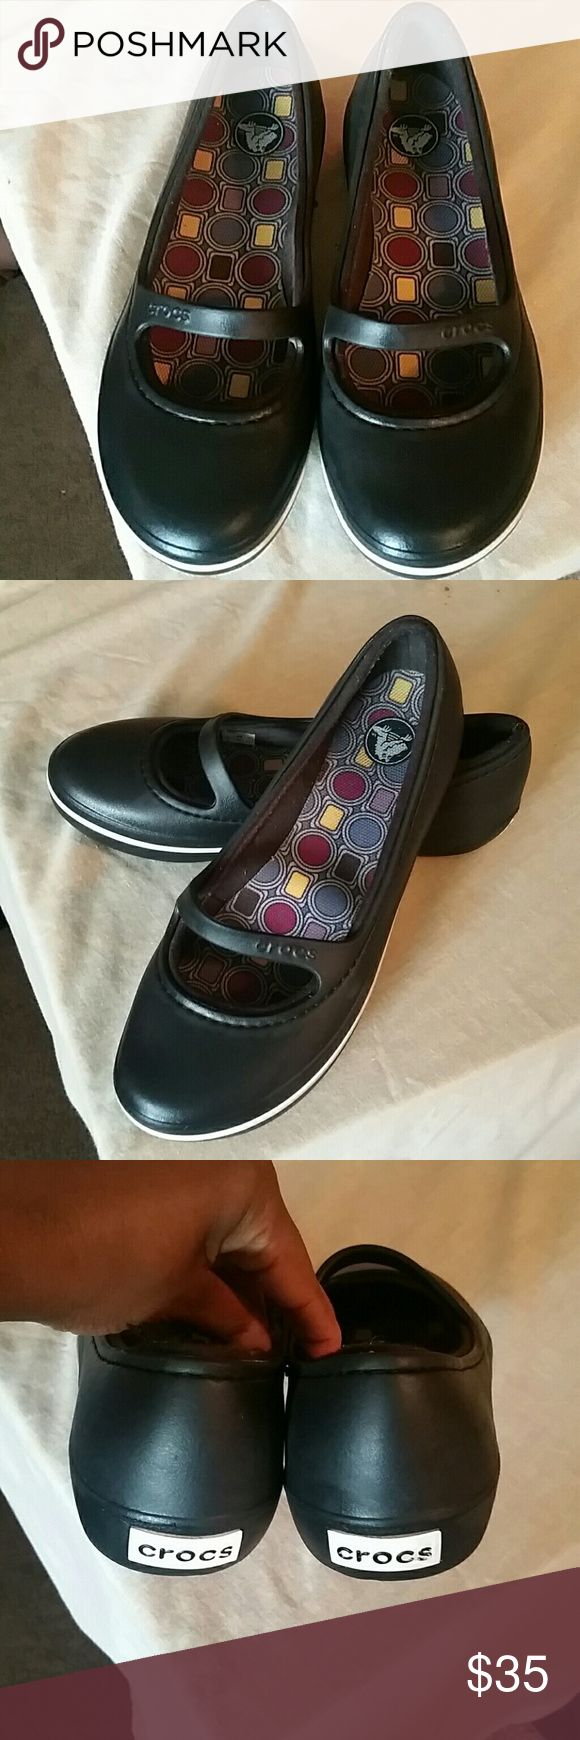 Women's Crocs Black & White women's crocs. Very comfortable shoes. Worn only once CROCS Shoes